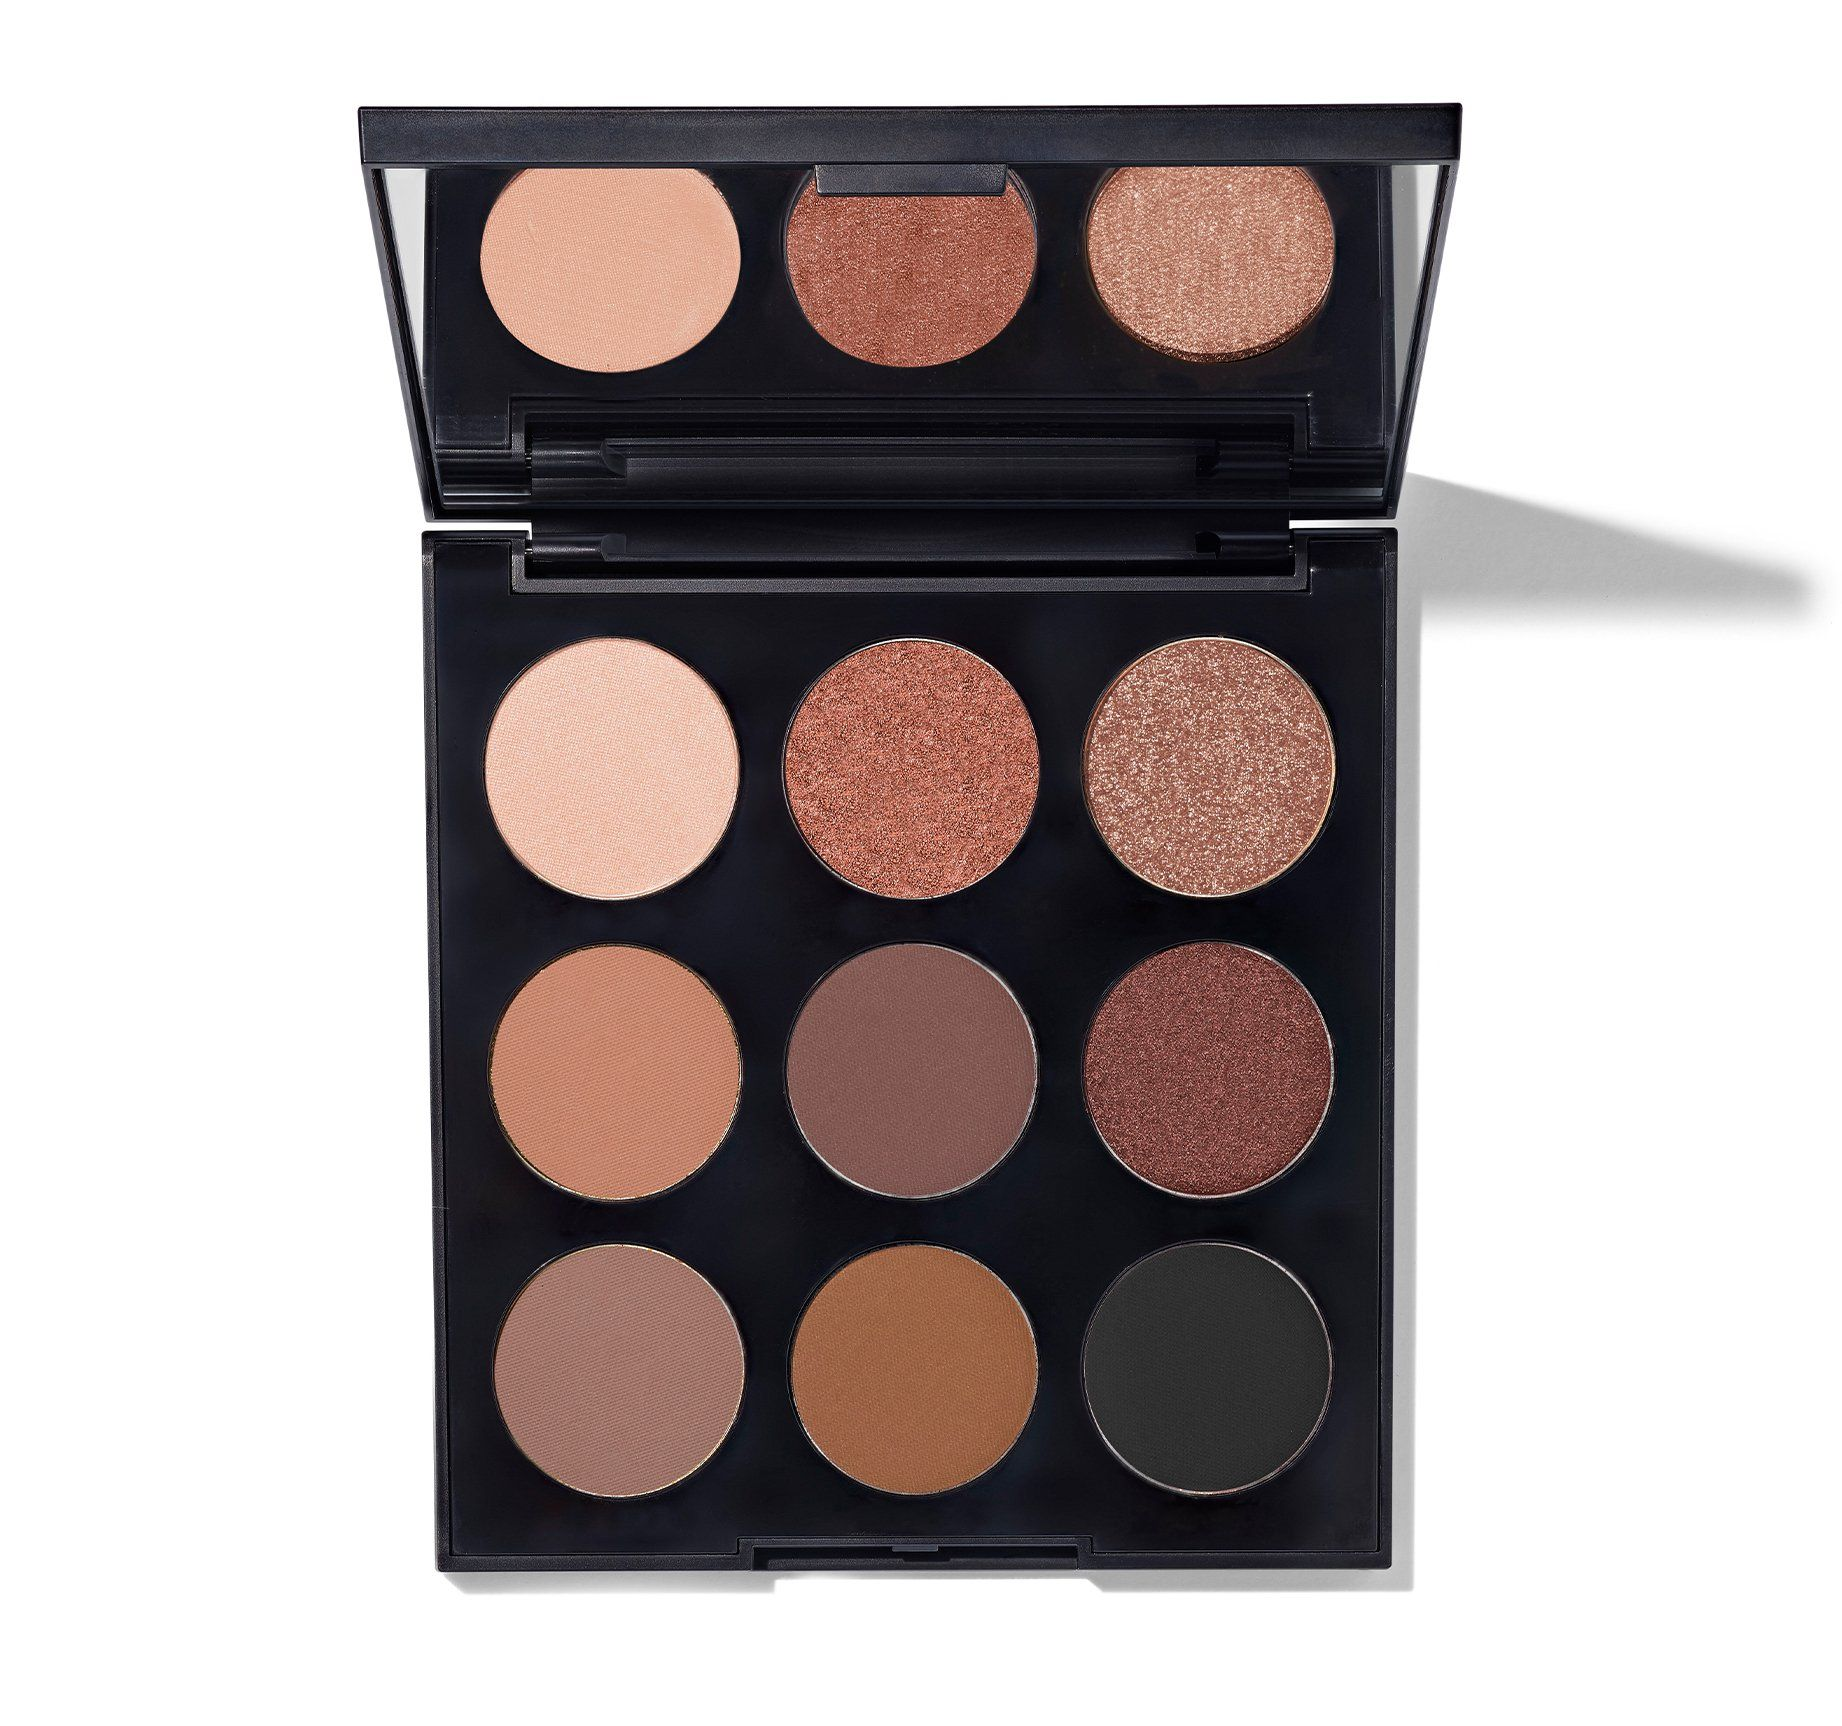 Morphe 9T Neutral Territory Artistry Palette Review